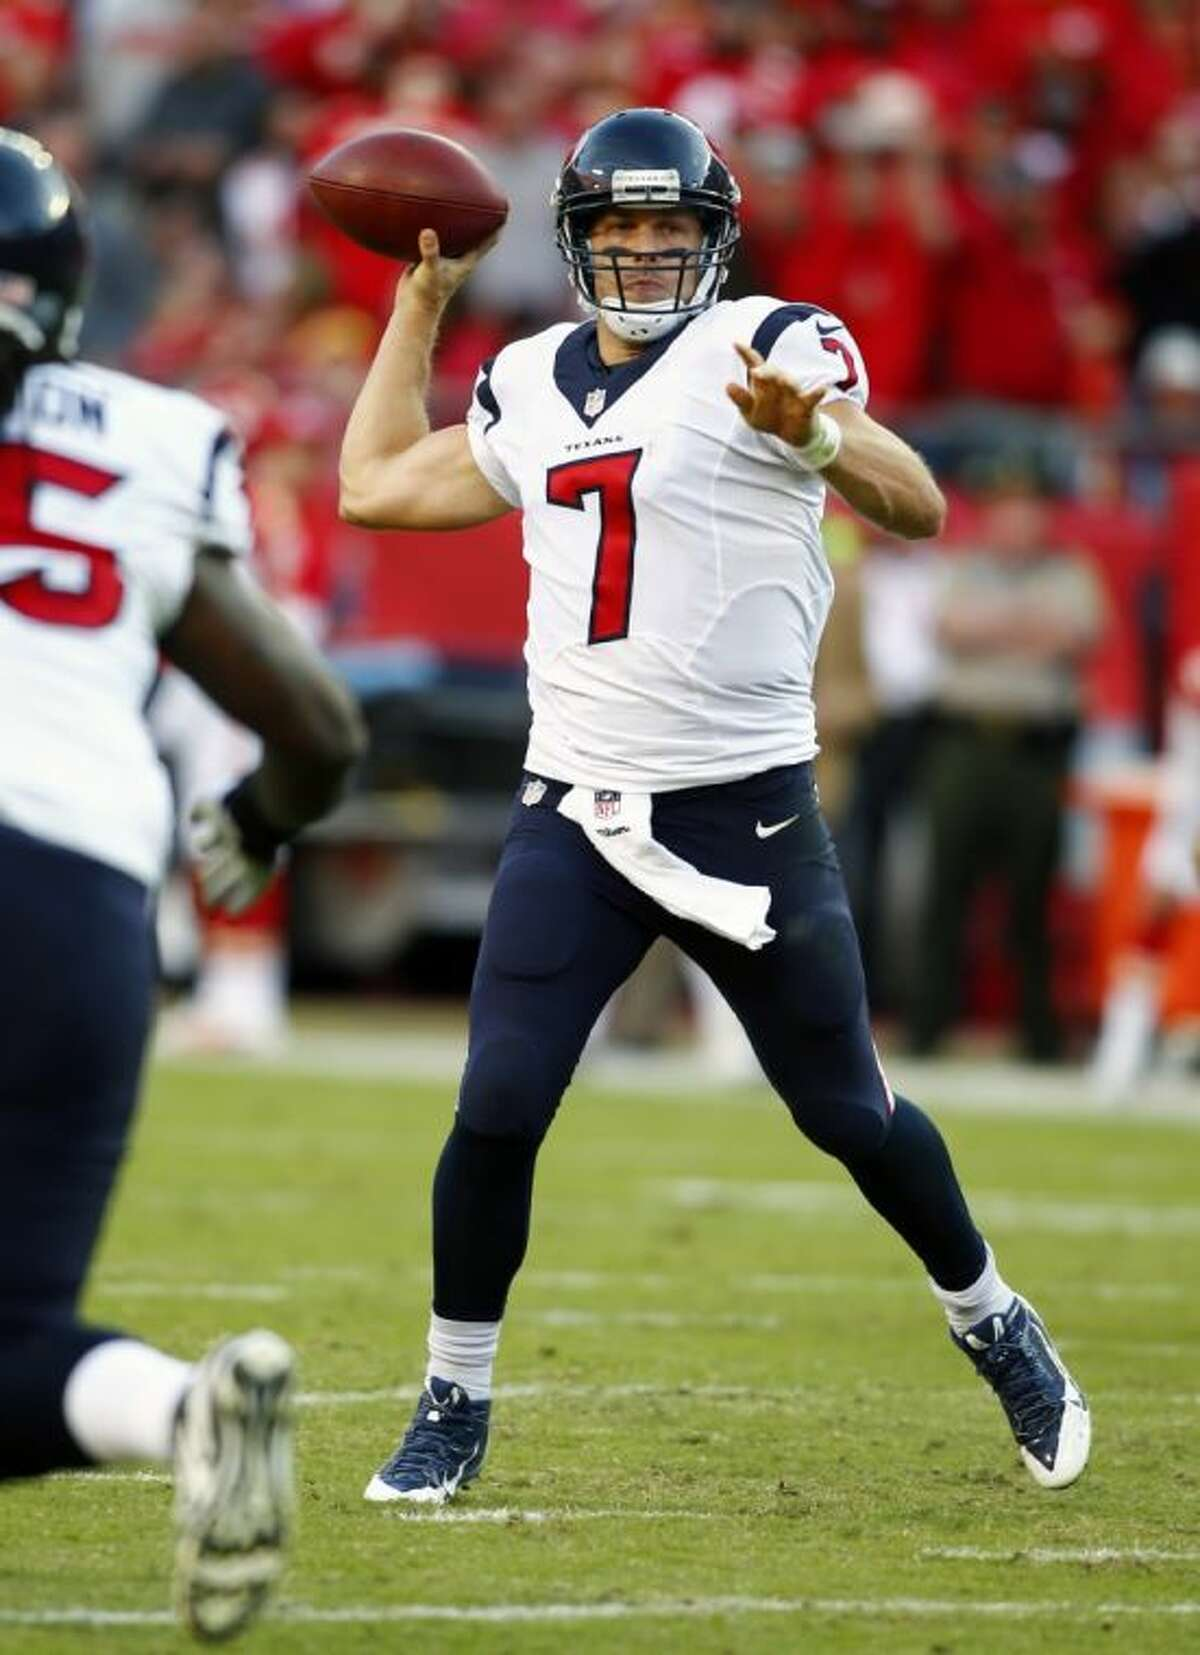 Case Keenum will start for the Houston Texans against Indianapolis on Sunday.